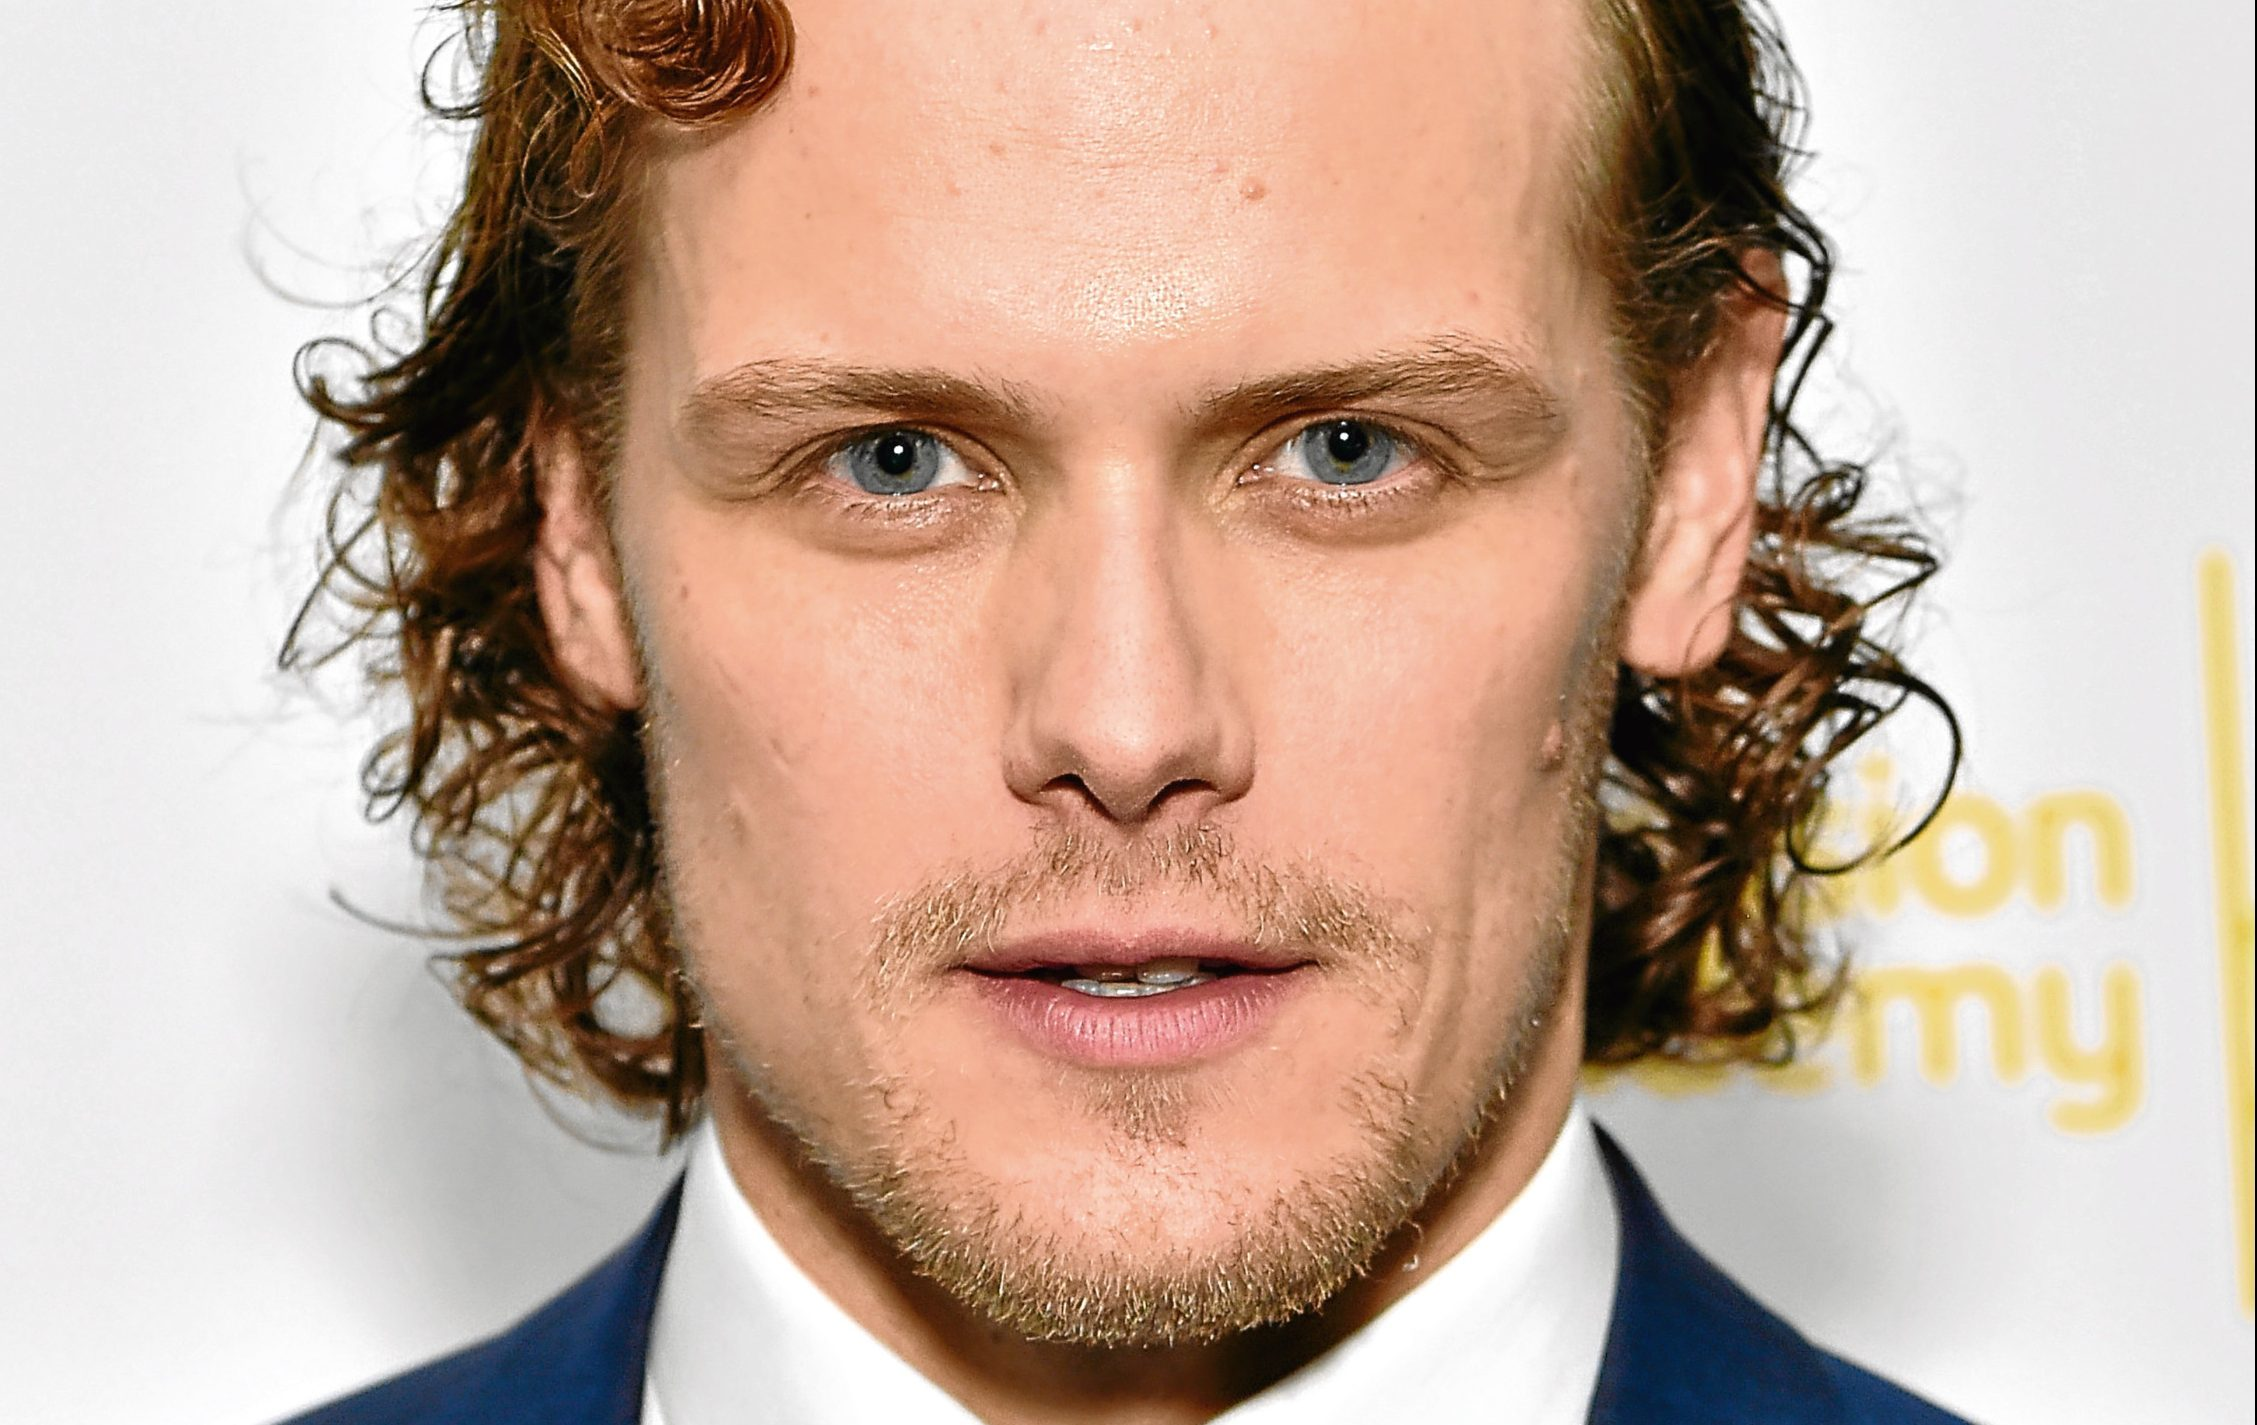 Outlander actor Sam Heughan is just one of a number of Scottish celebrities with red locks